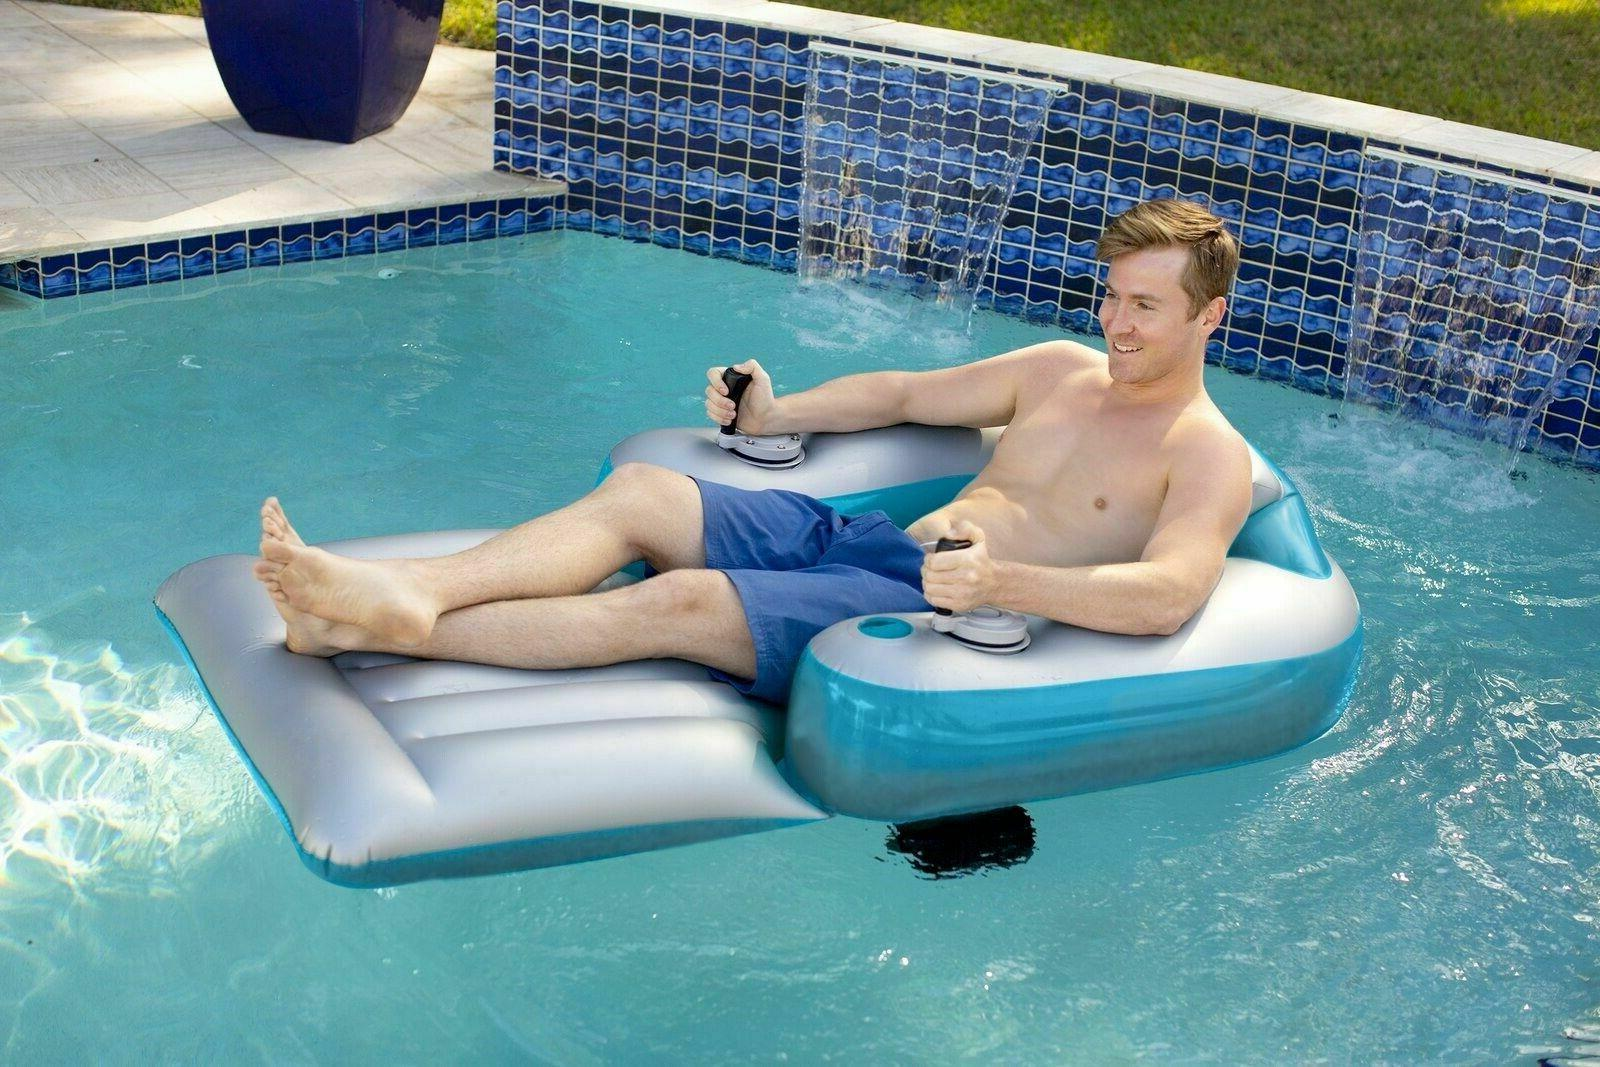 Splash Runner Motorized Inflatable Lounger Pool/Lake Chair F